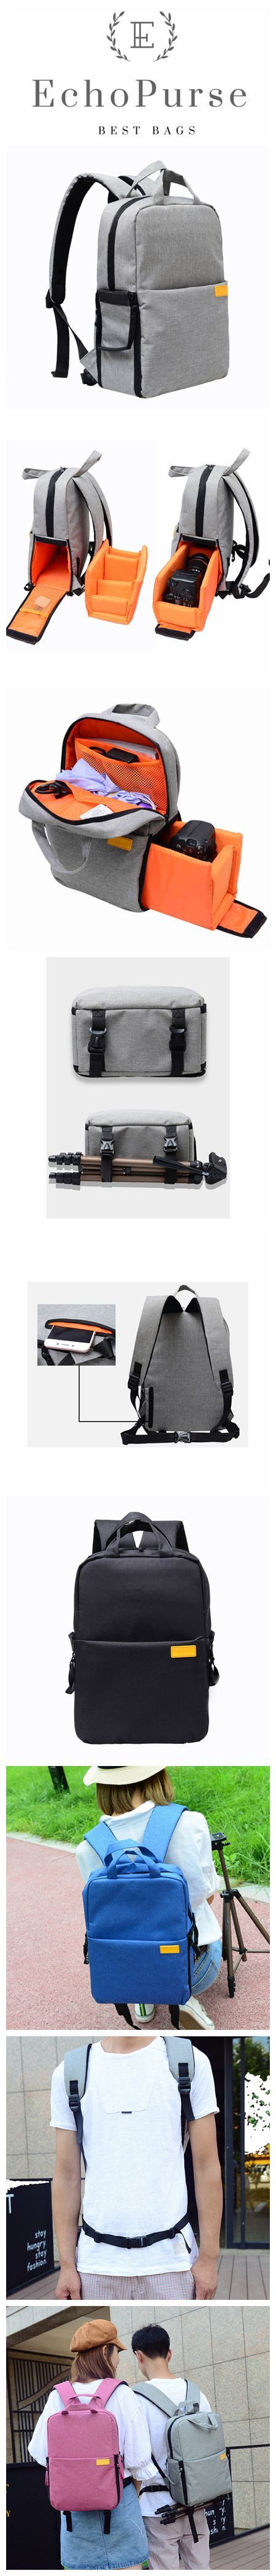 Professional Outdoor Photography Bag, Multifunctional Camera Backpack, Micro-Camera Pouch B530